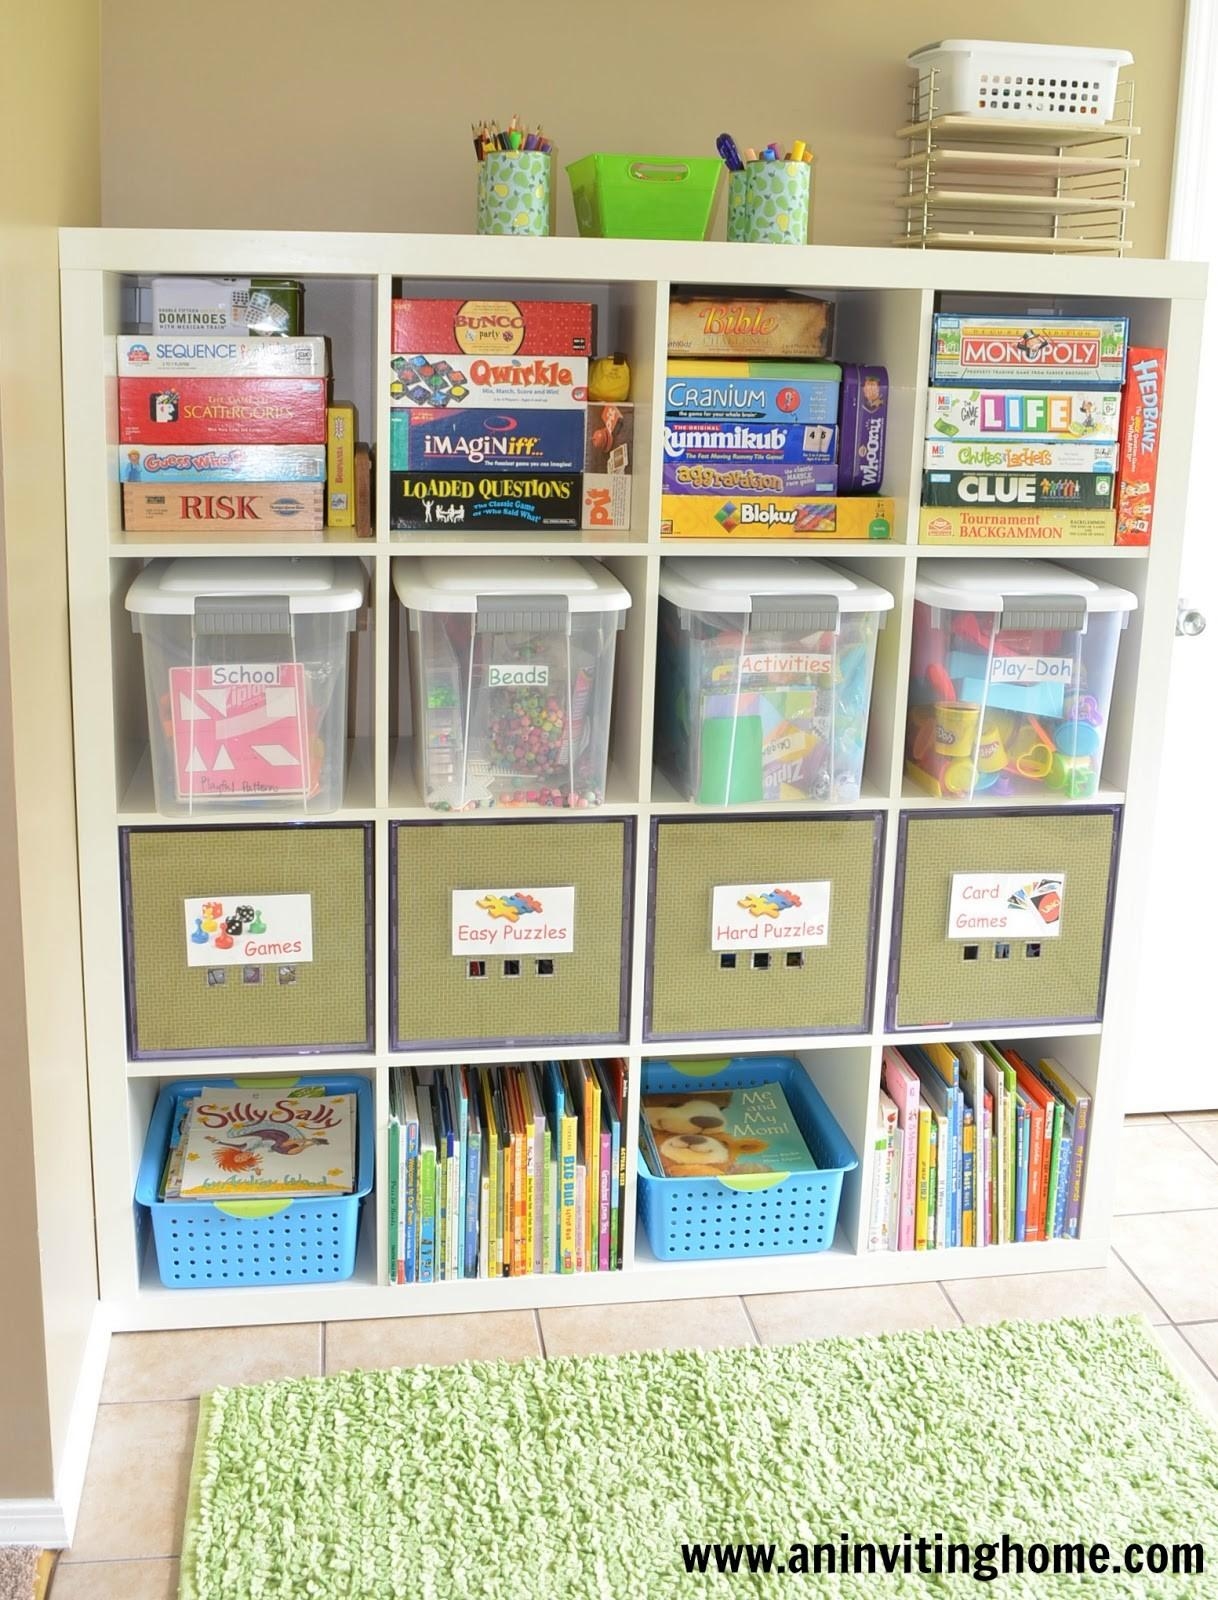 Inviting Home Tips Organizing Kid Craft Space